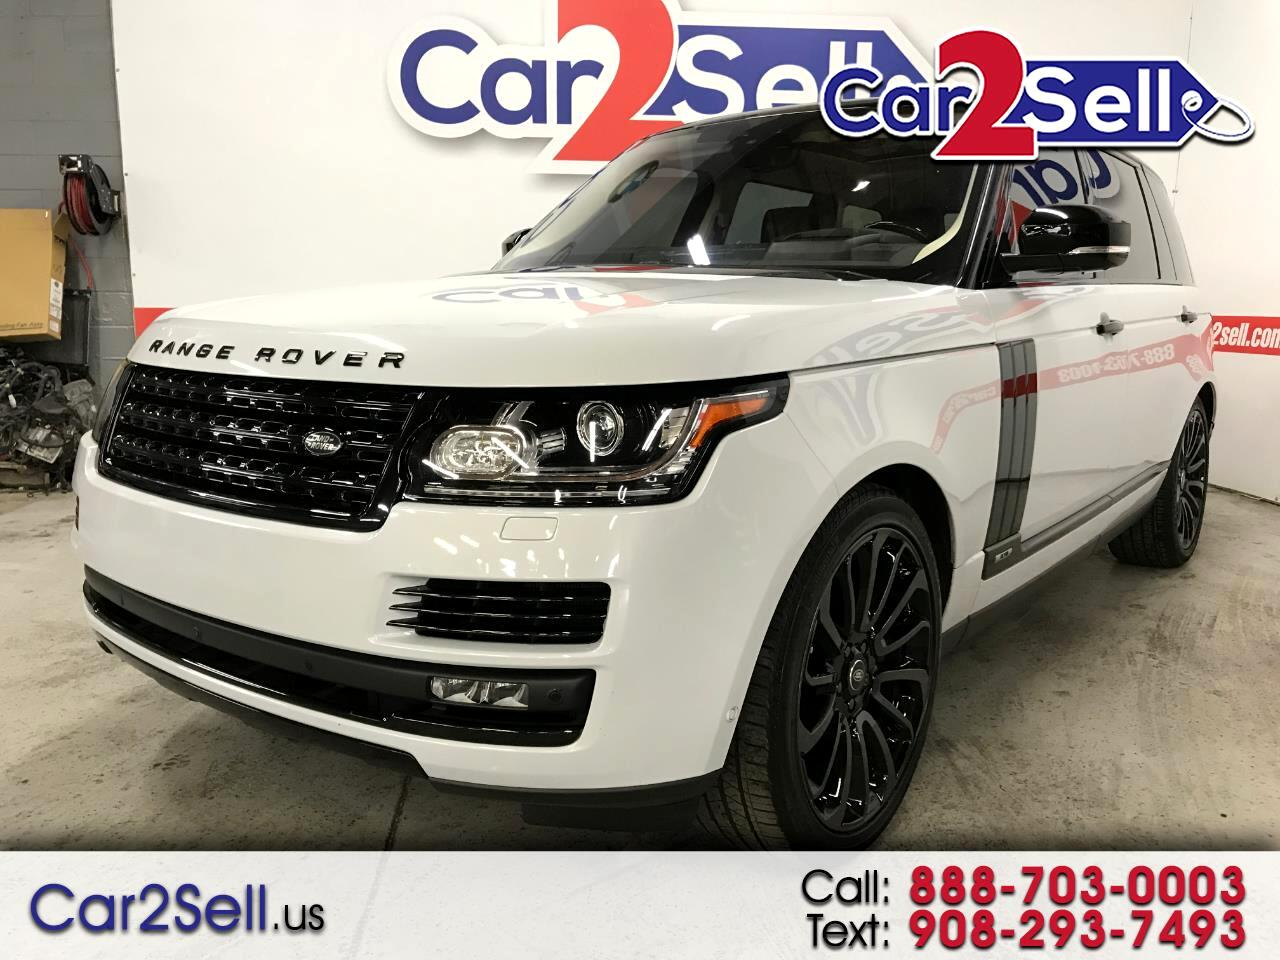 2017 Land Rover Range Rover 4WD 4dr Supercharged Autobiography LWB